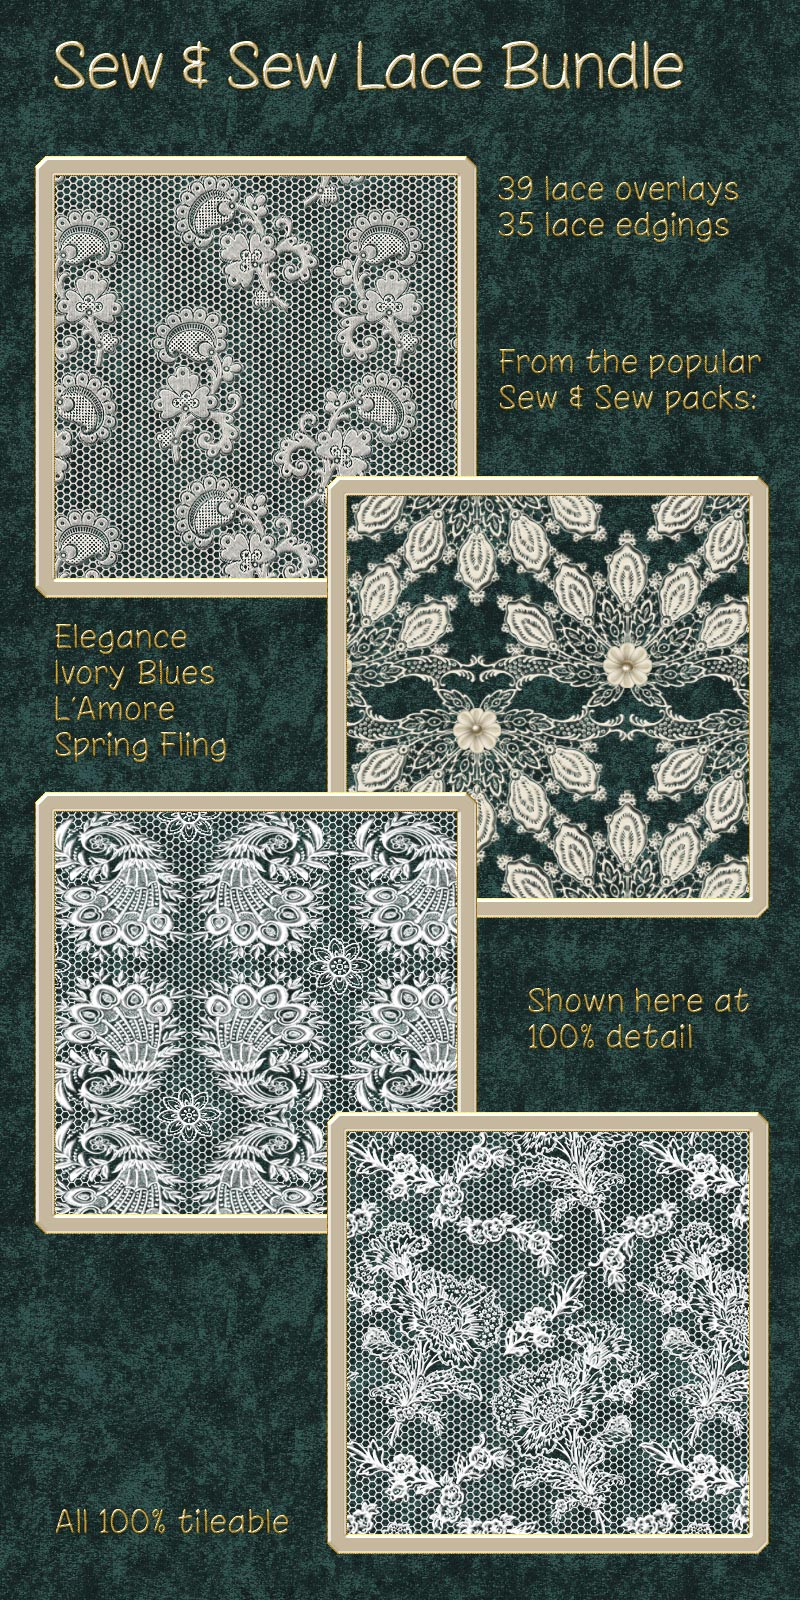 Sew & Sew Lace Bundle